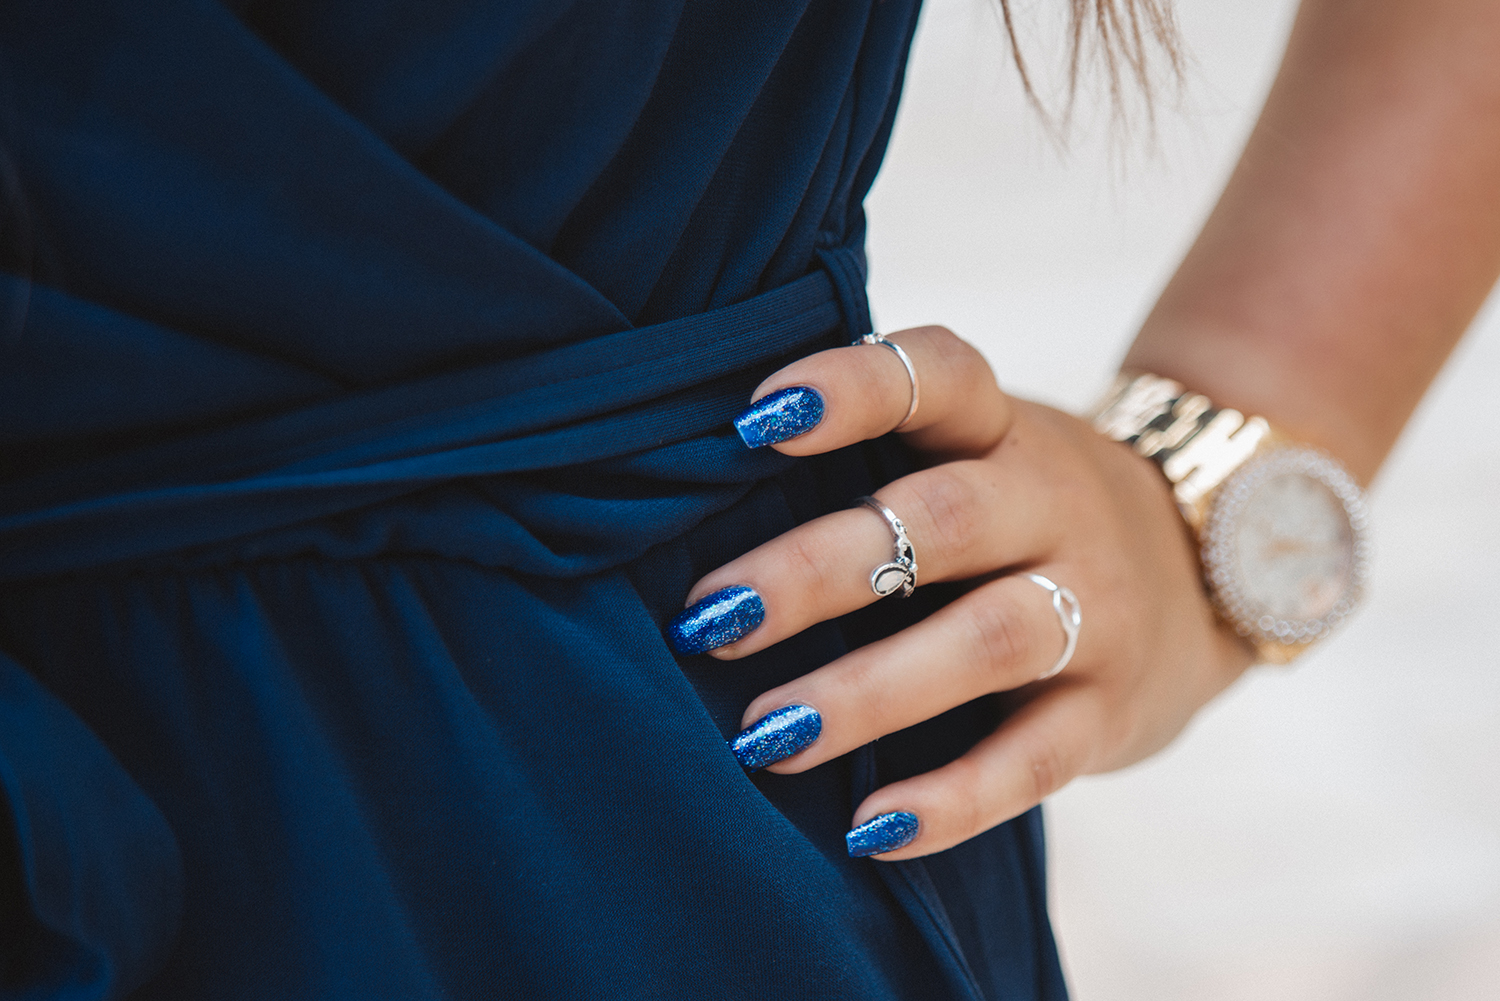 Lackryl High Heals Glittering Blue Nails